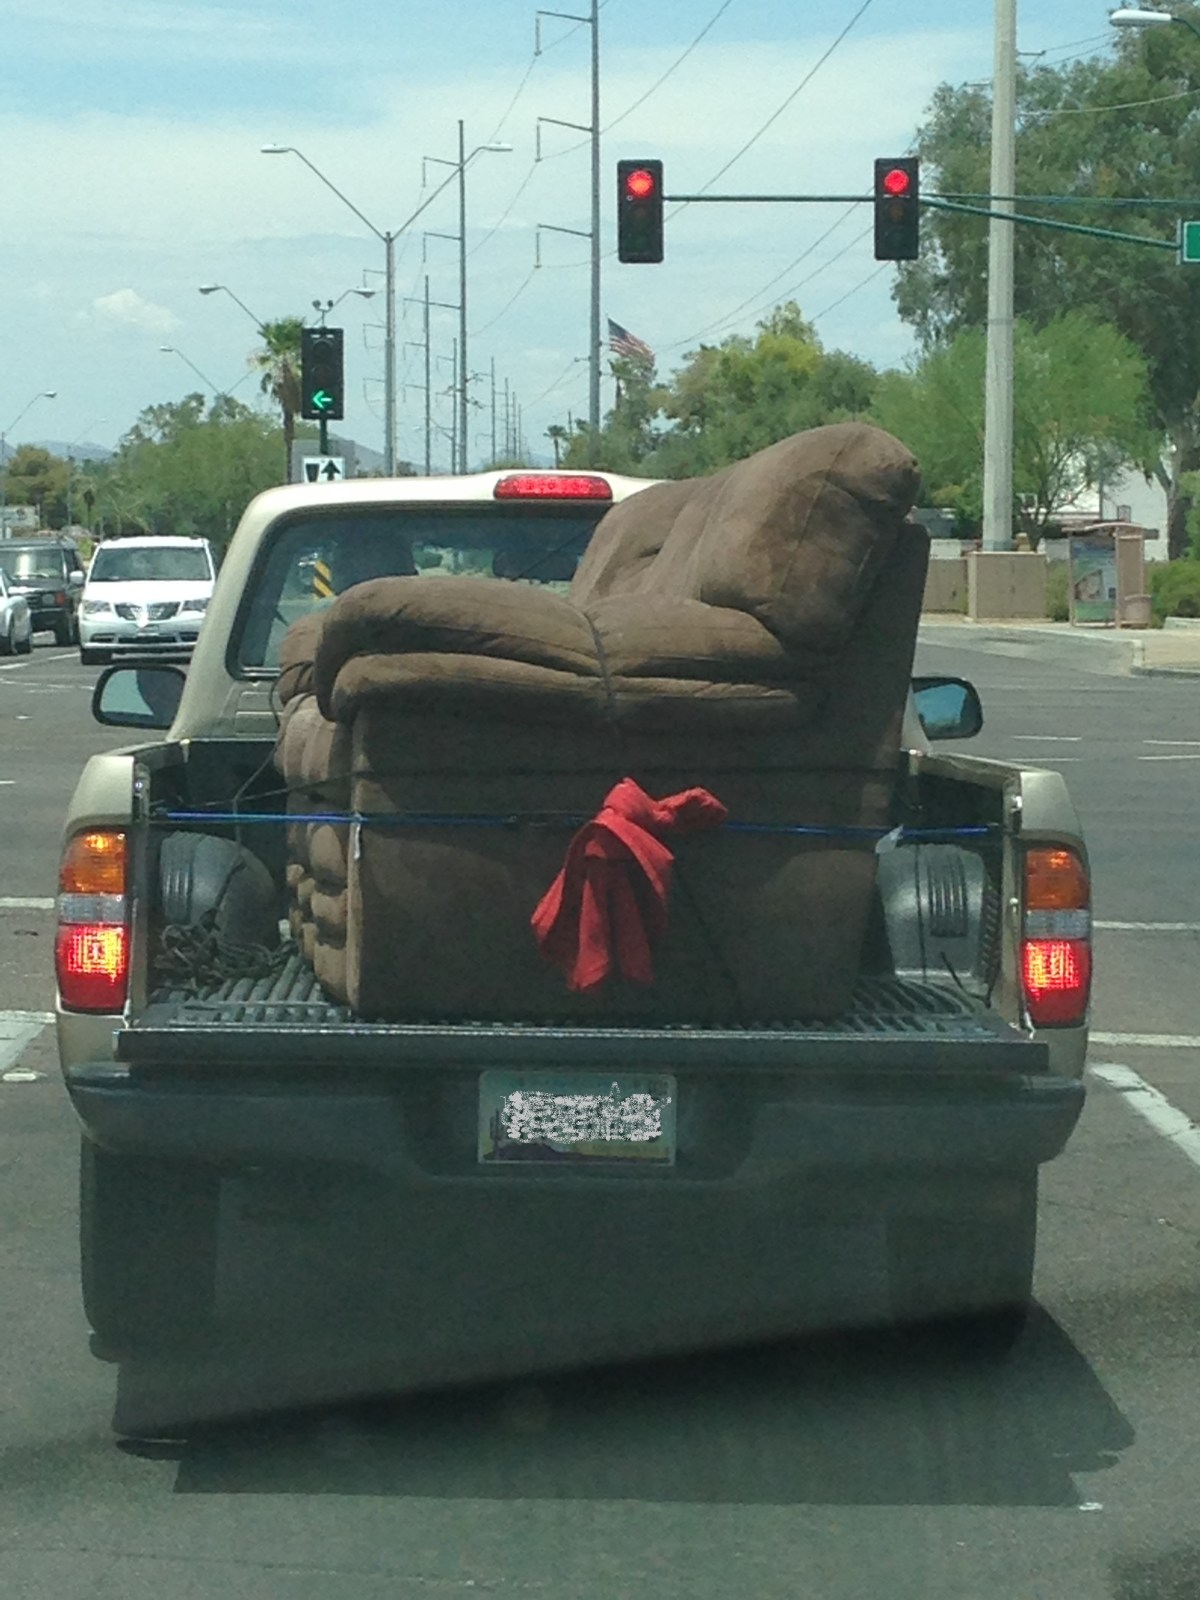 image of couch in a truckbed